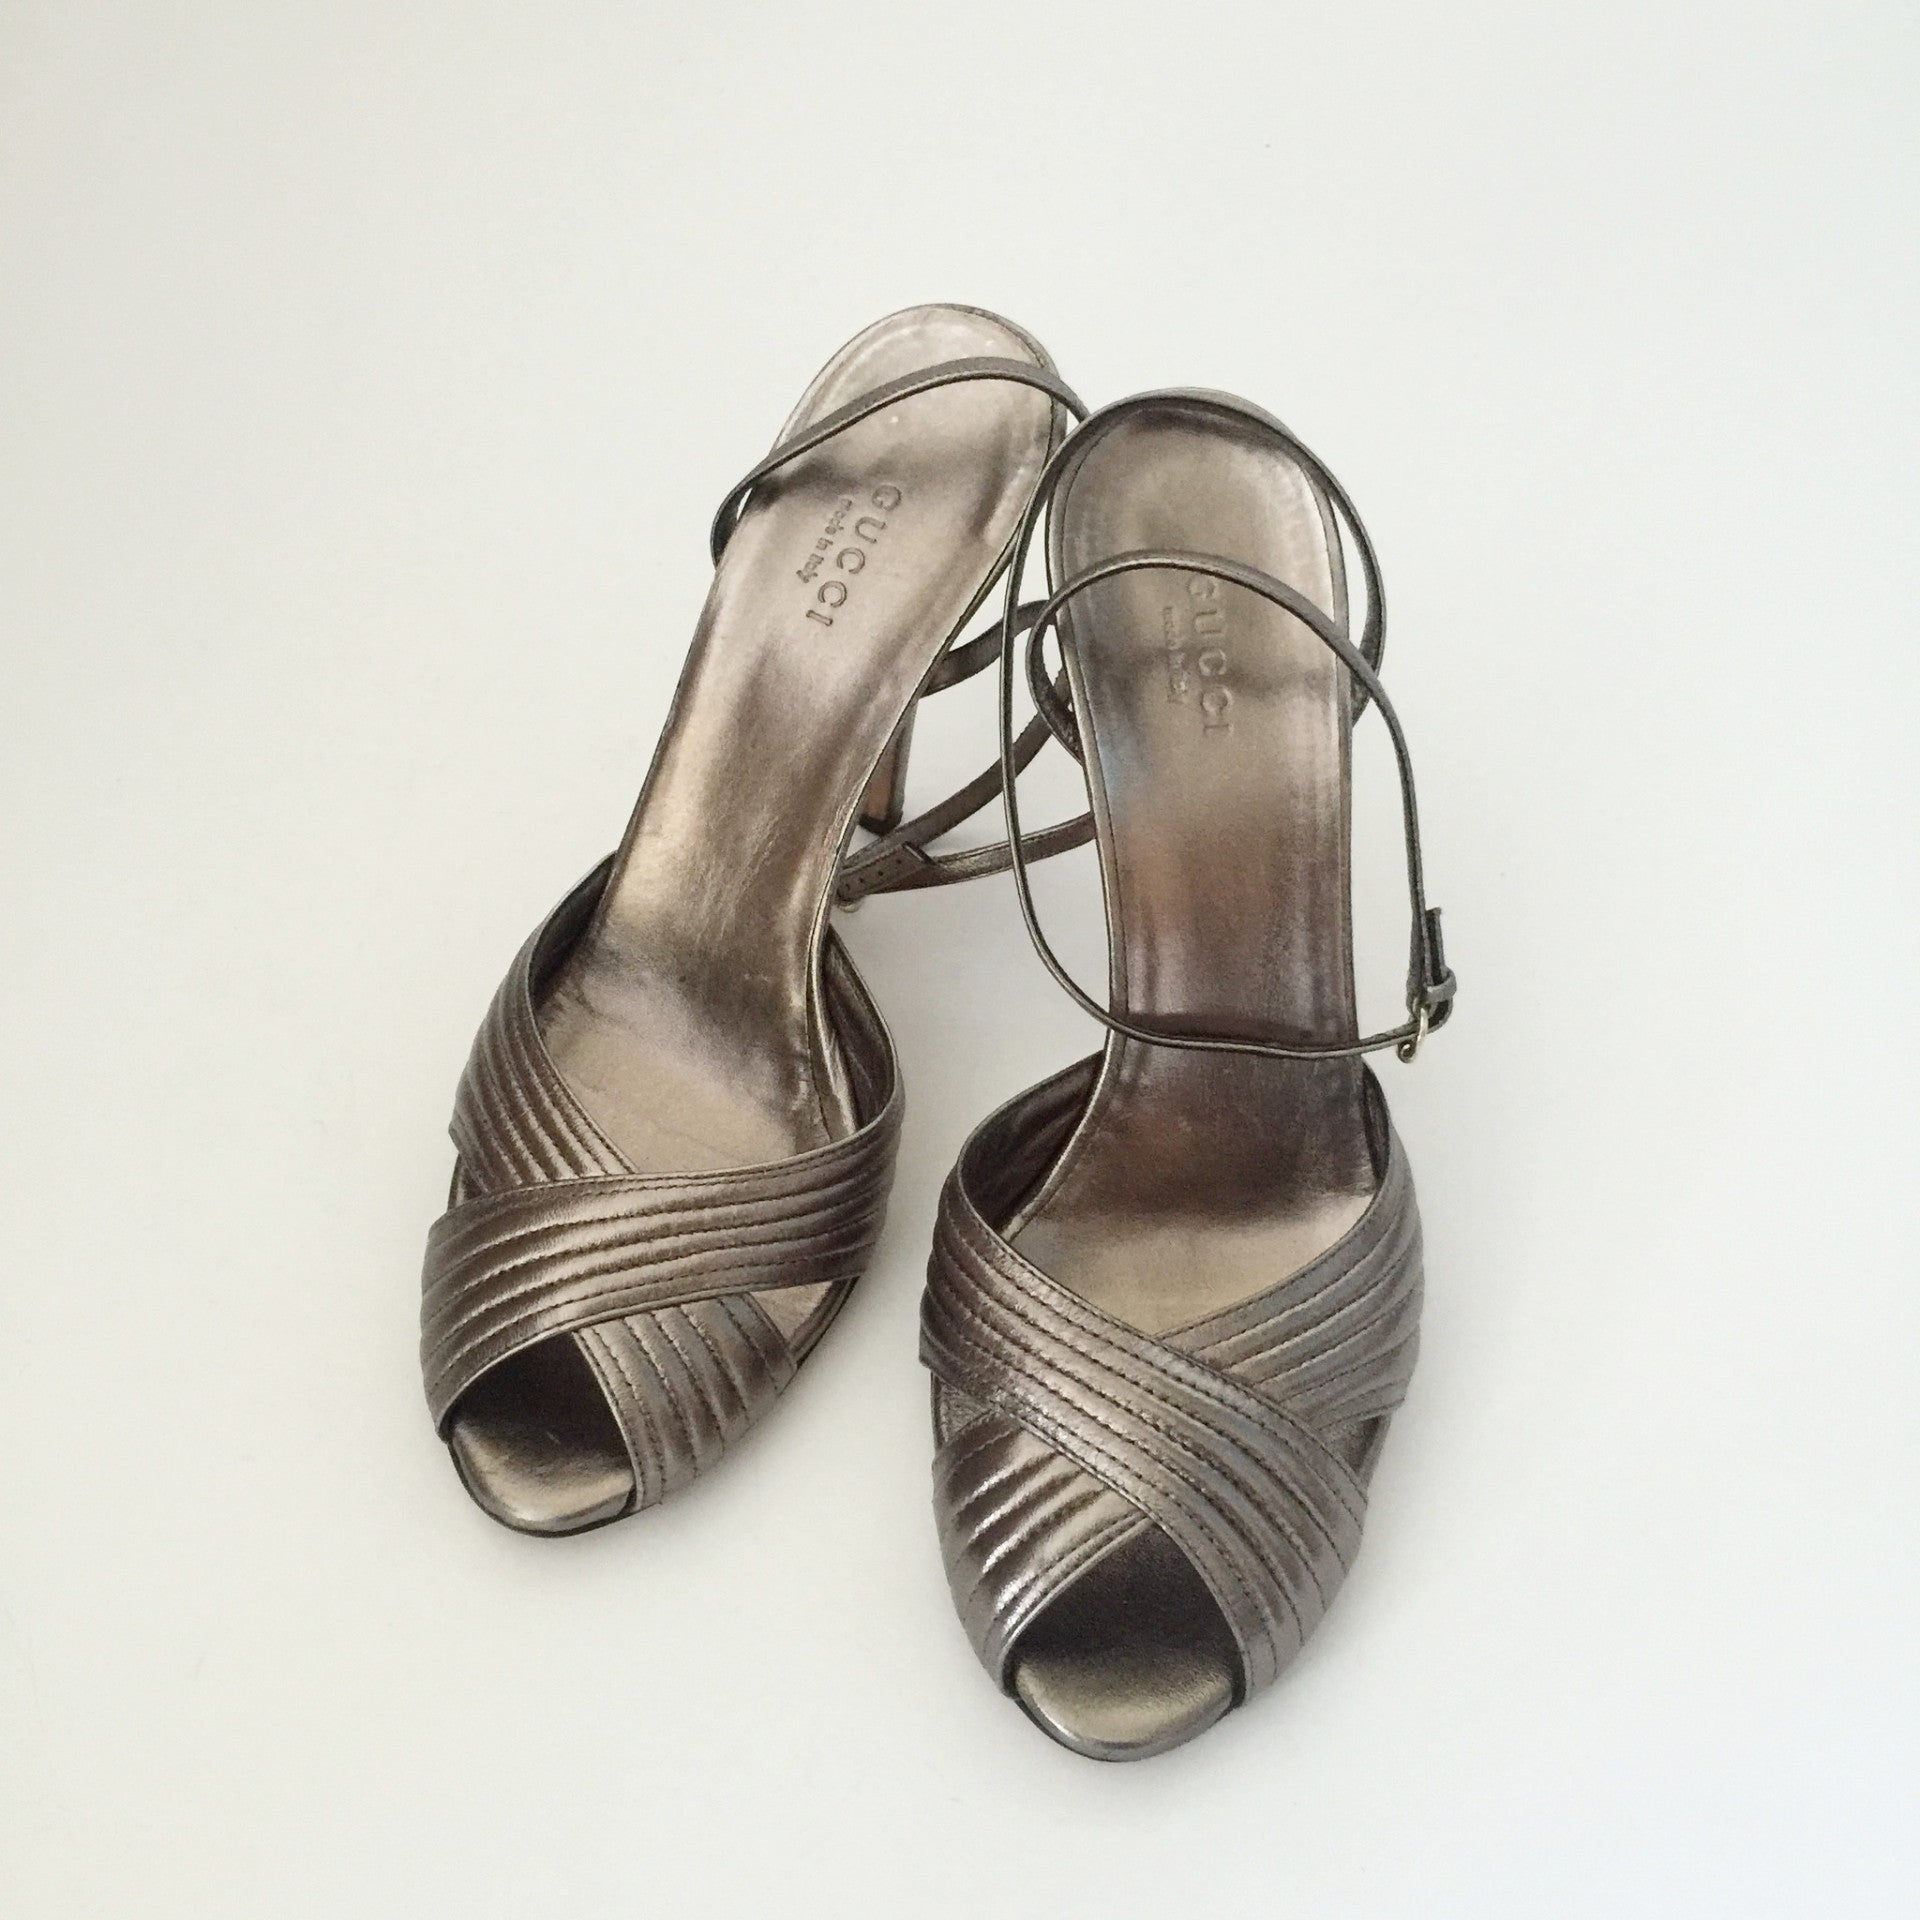 Authentic GUCCI Open Toe Pewter Heels Size 38 (fits like 7.5)